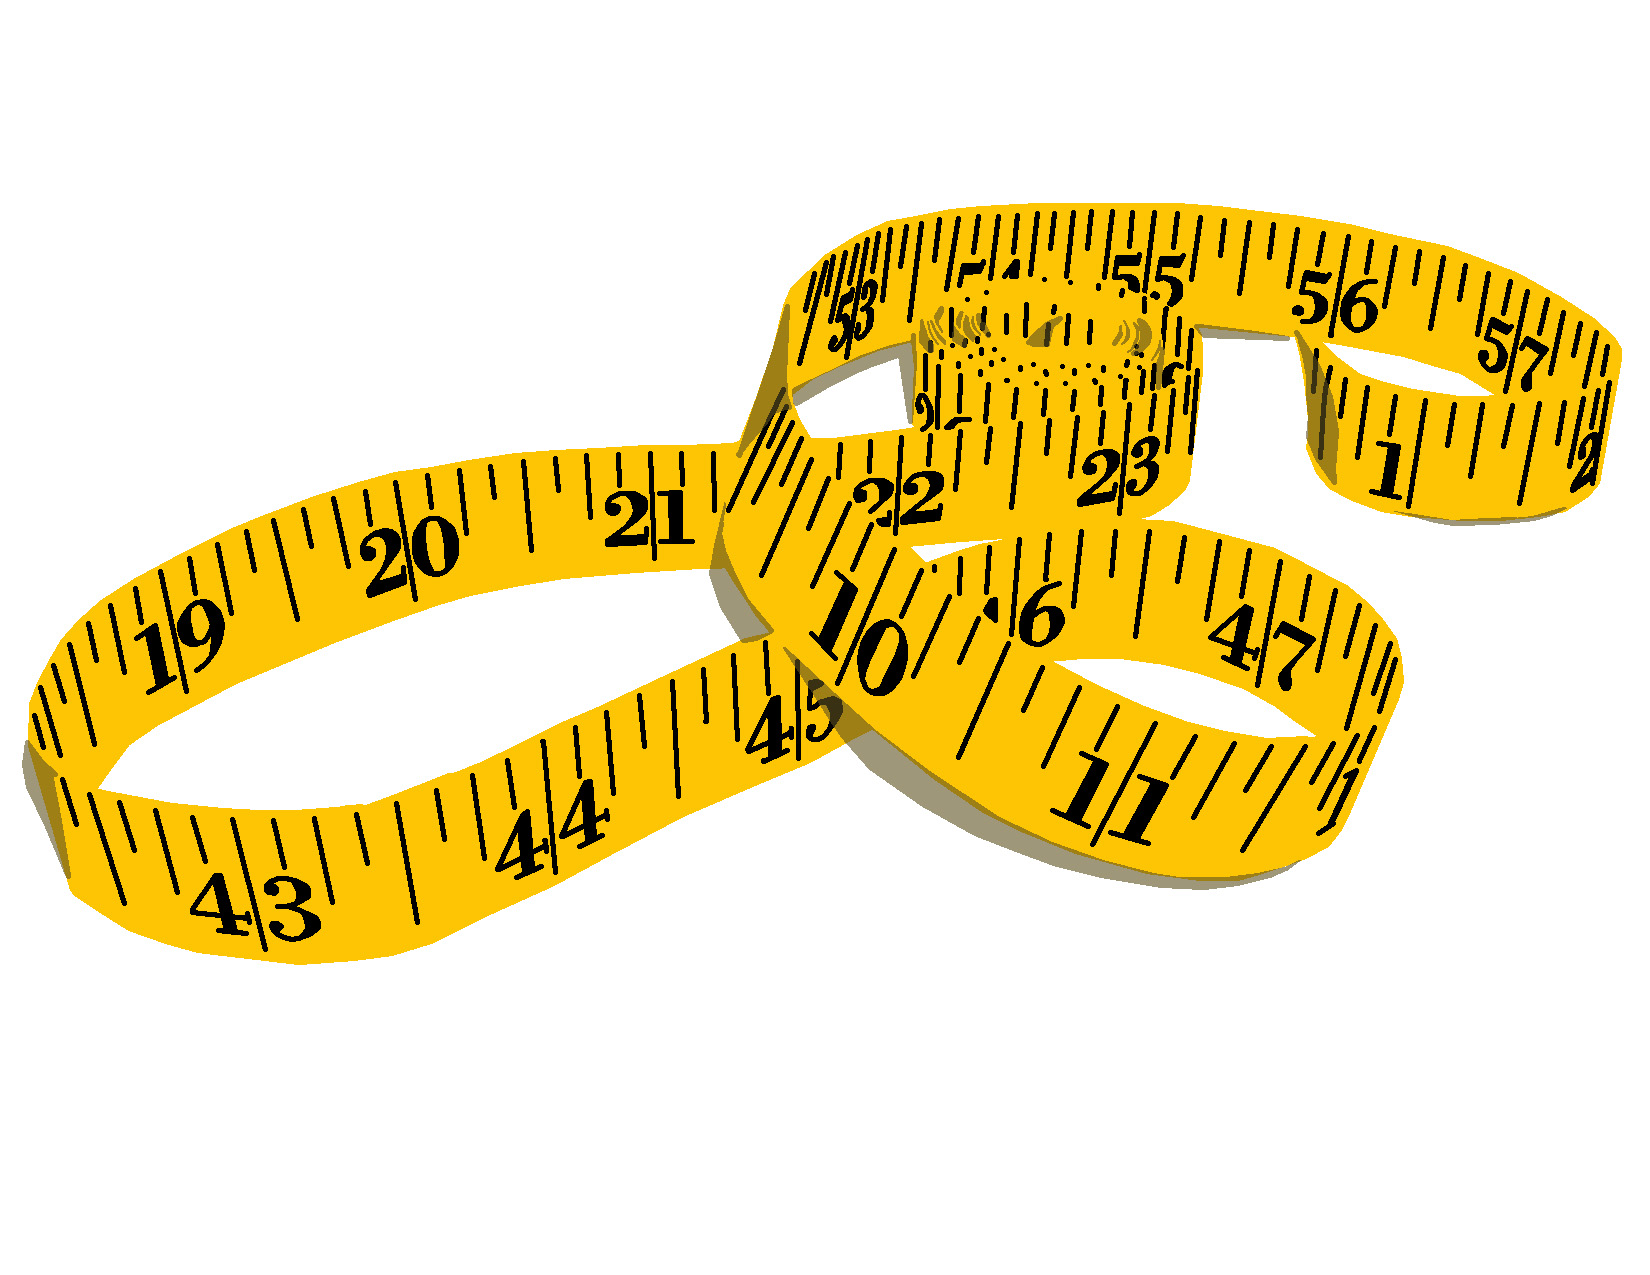 Sewing Measuring Tape Clipart.